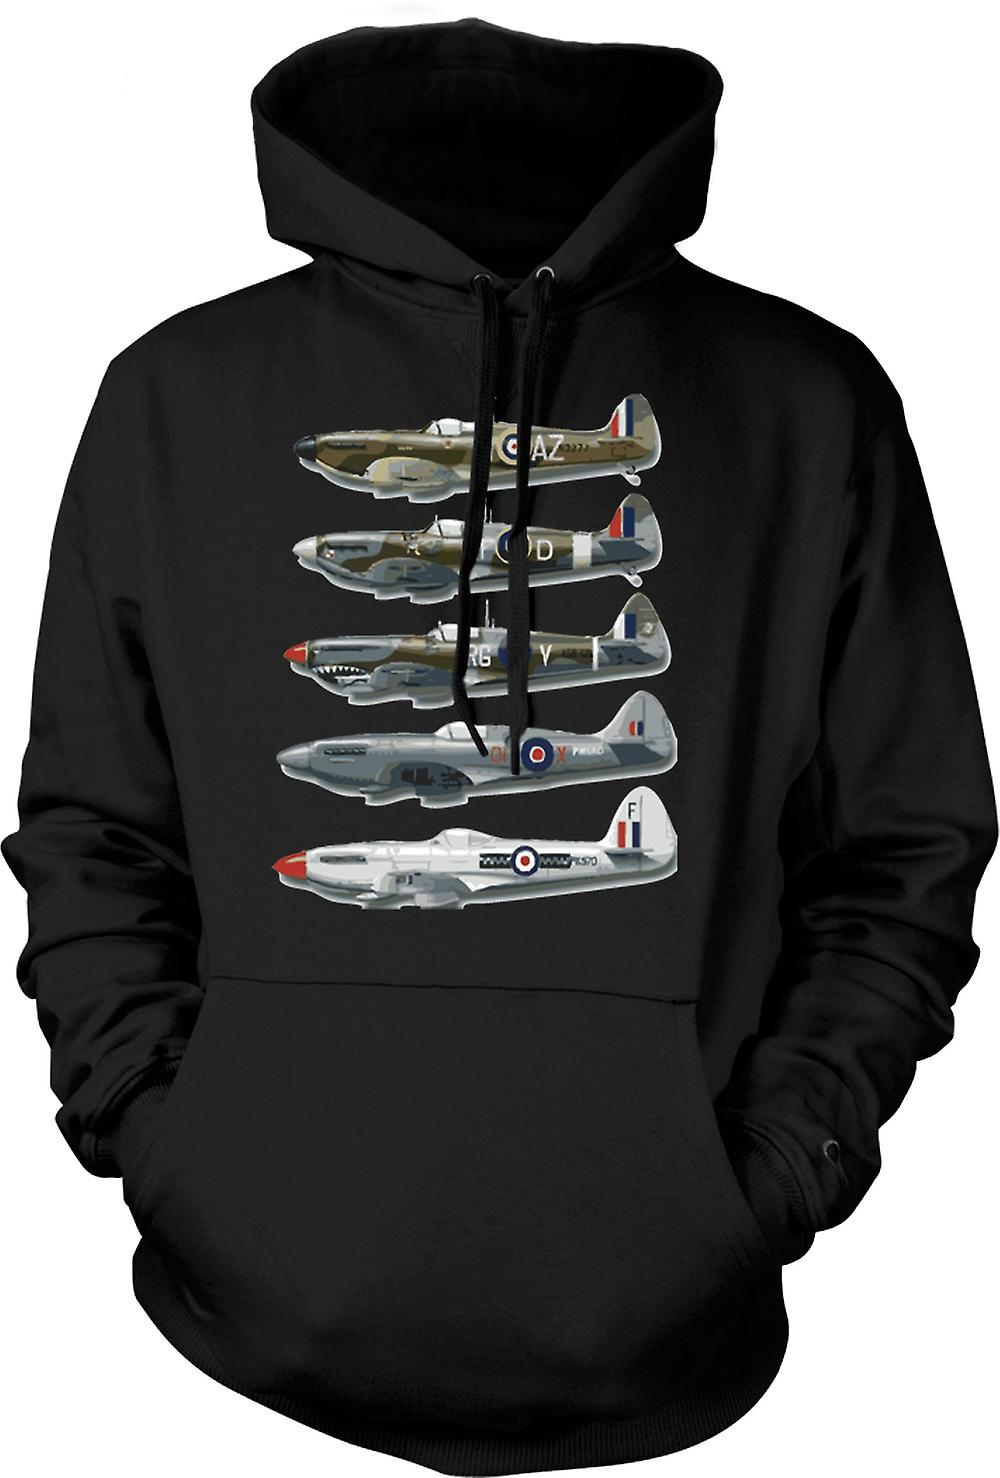 Kids Hoodie - 5 Spitfires Collage - Quote